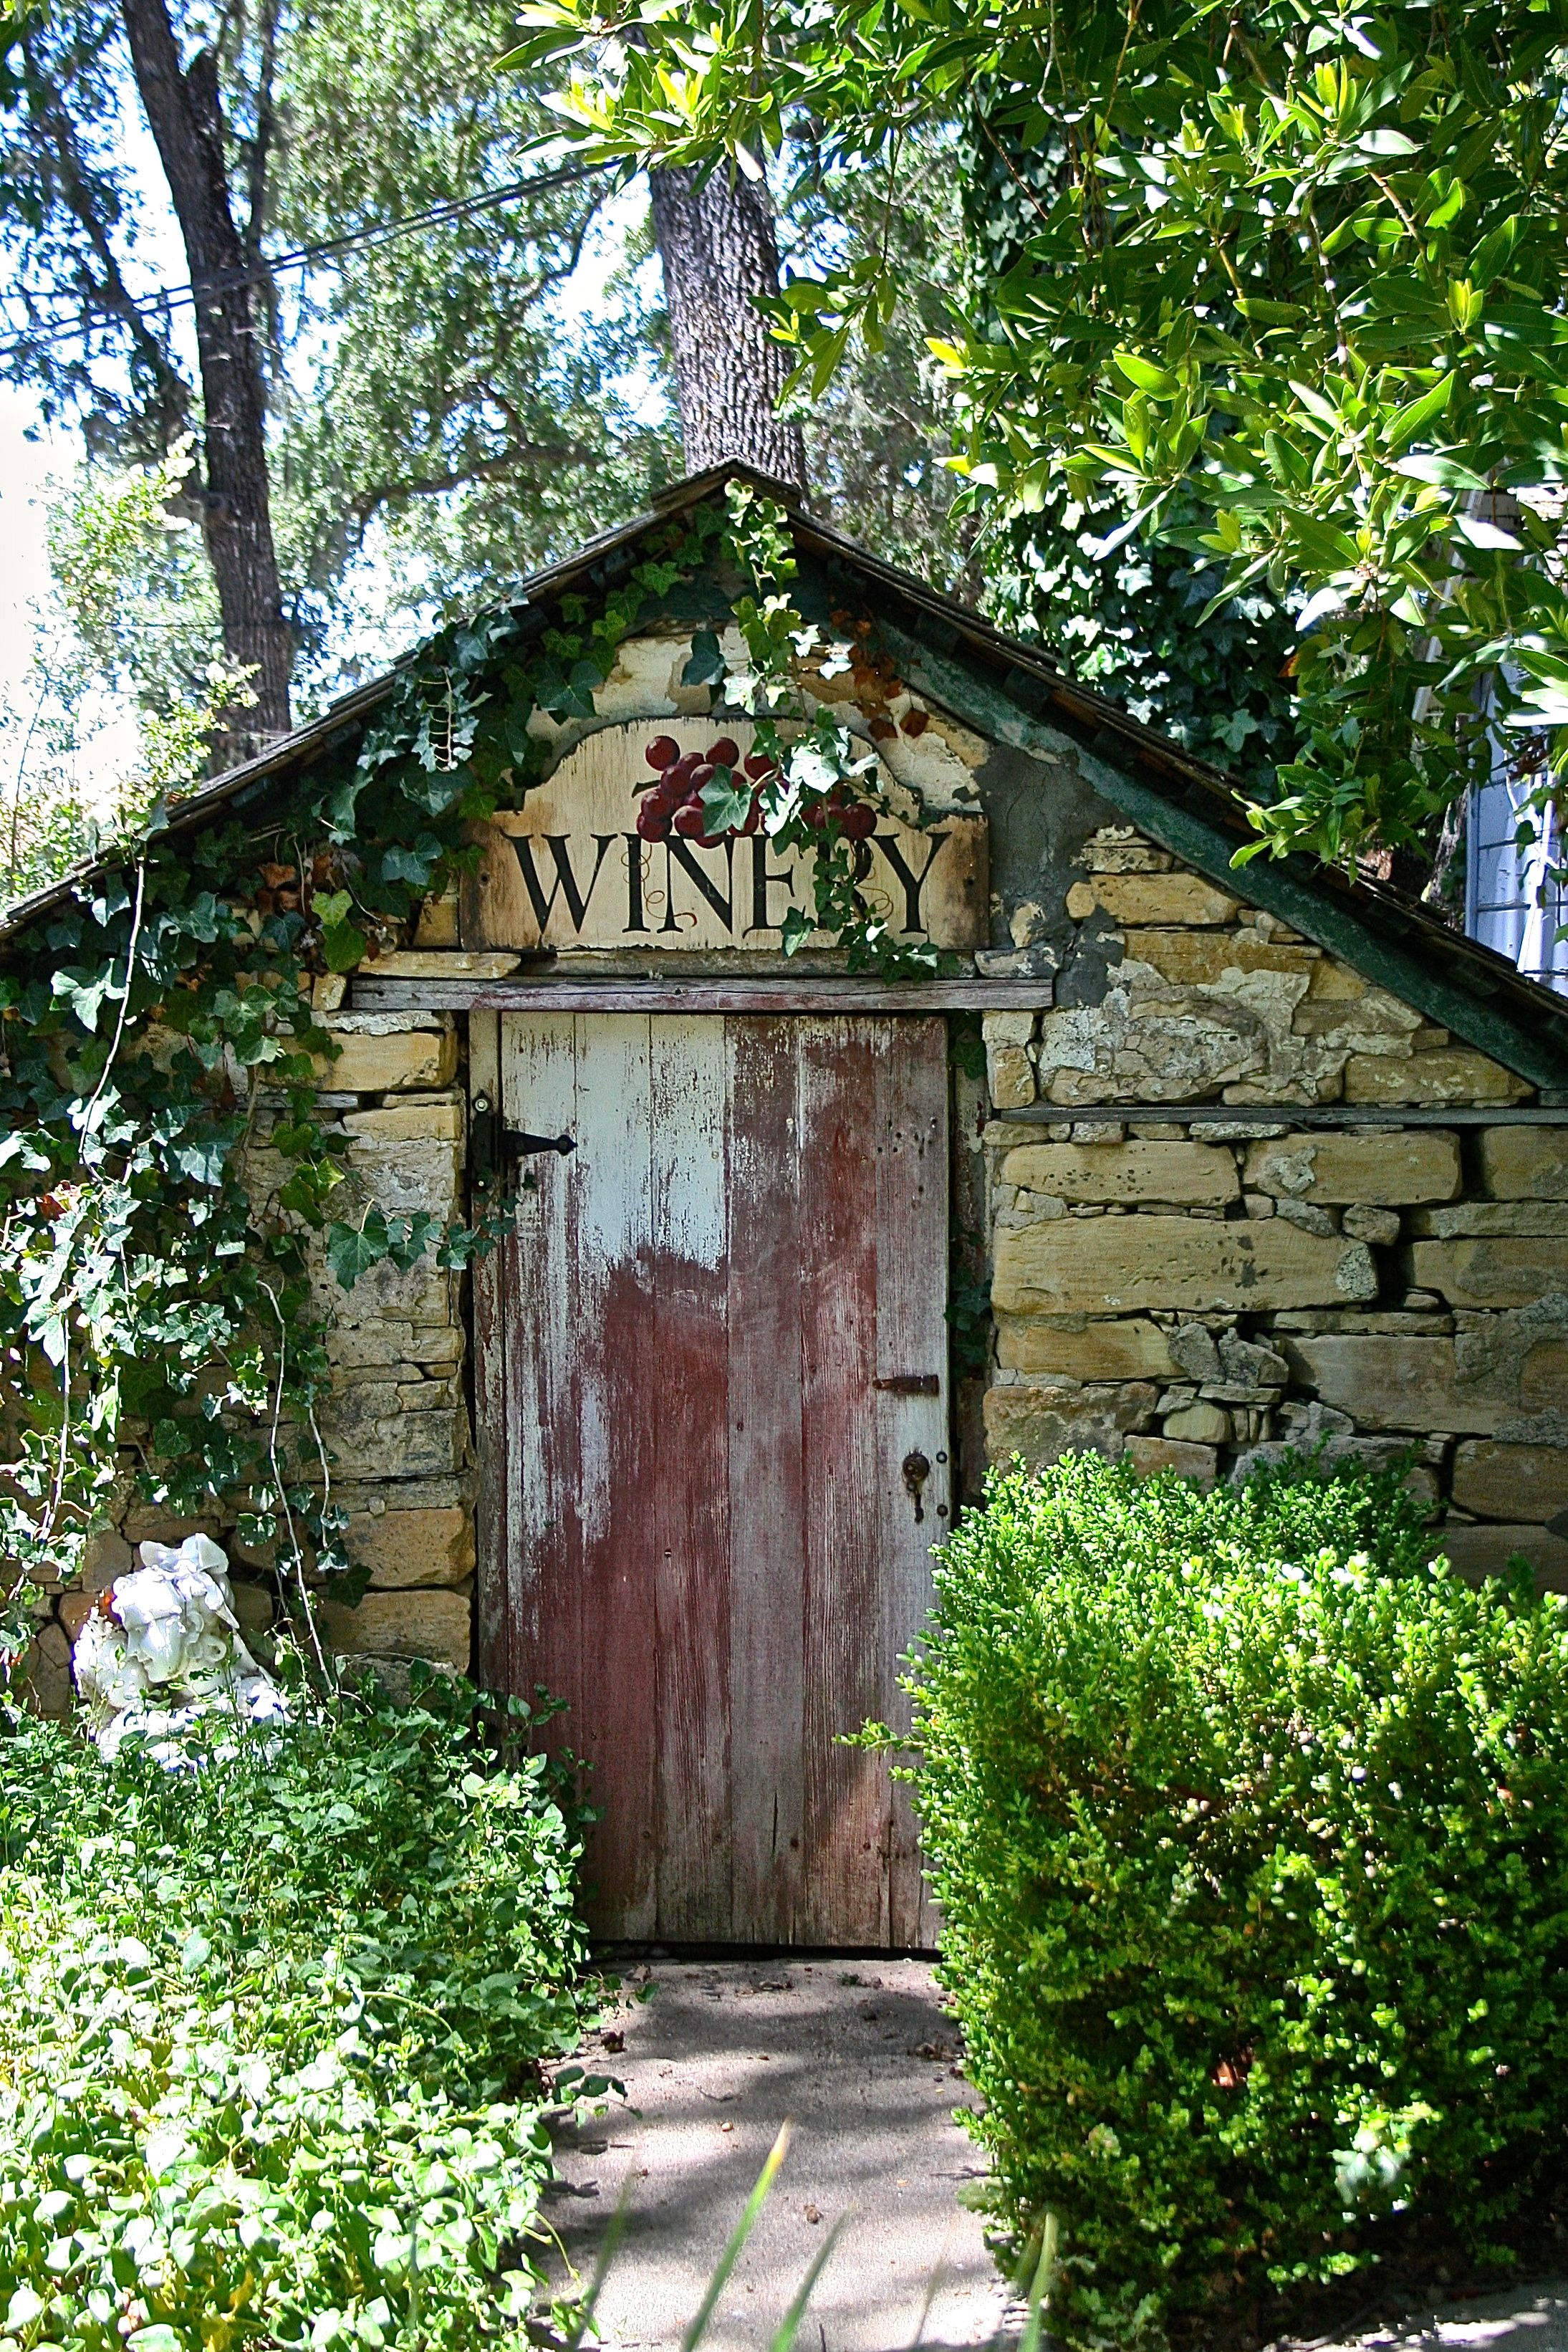 cool little wine basement weathered from time and mother nature.  love the old front door and sign.   ..rh